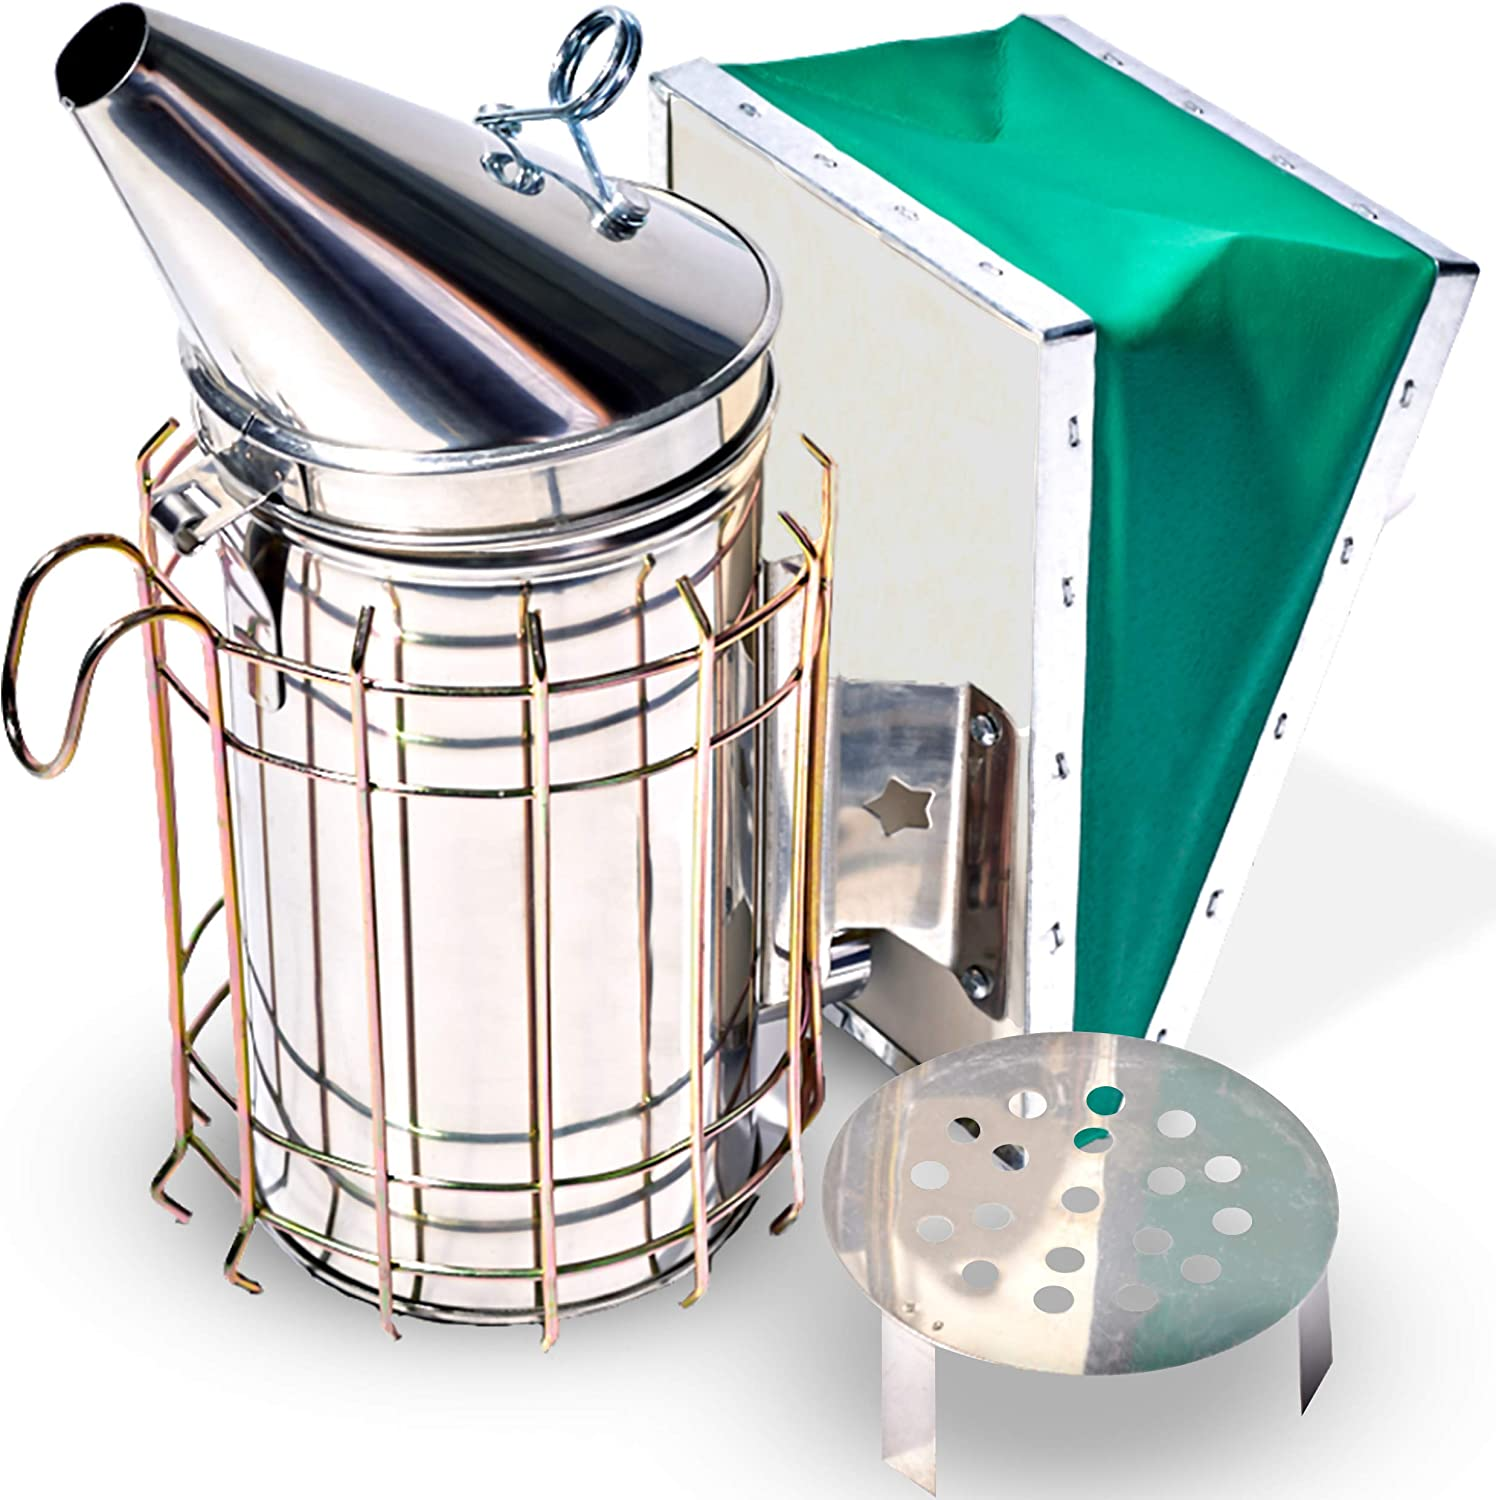 Stainless Steel Bee Smoker with Heat Chamber, Burn Shield, Green Bellow, and Heavy Duty Feature